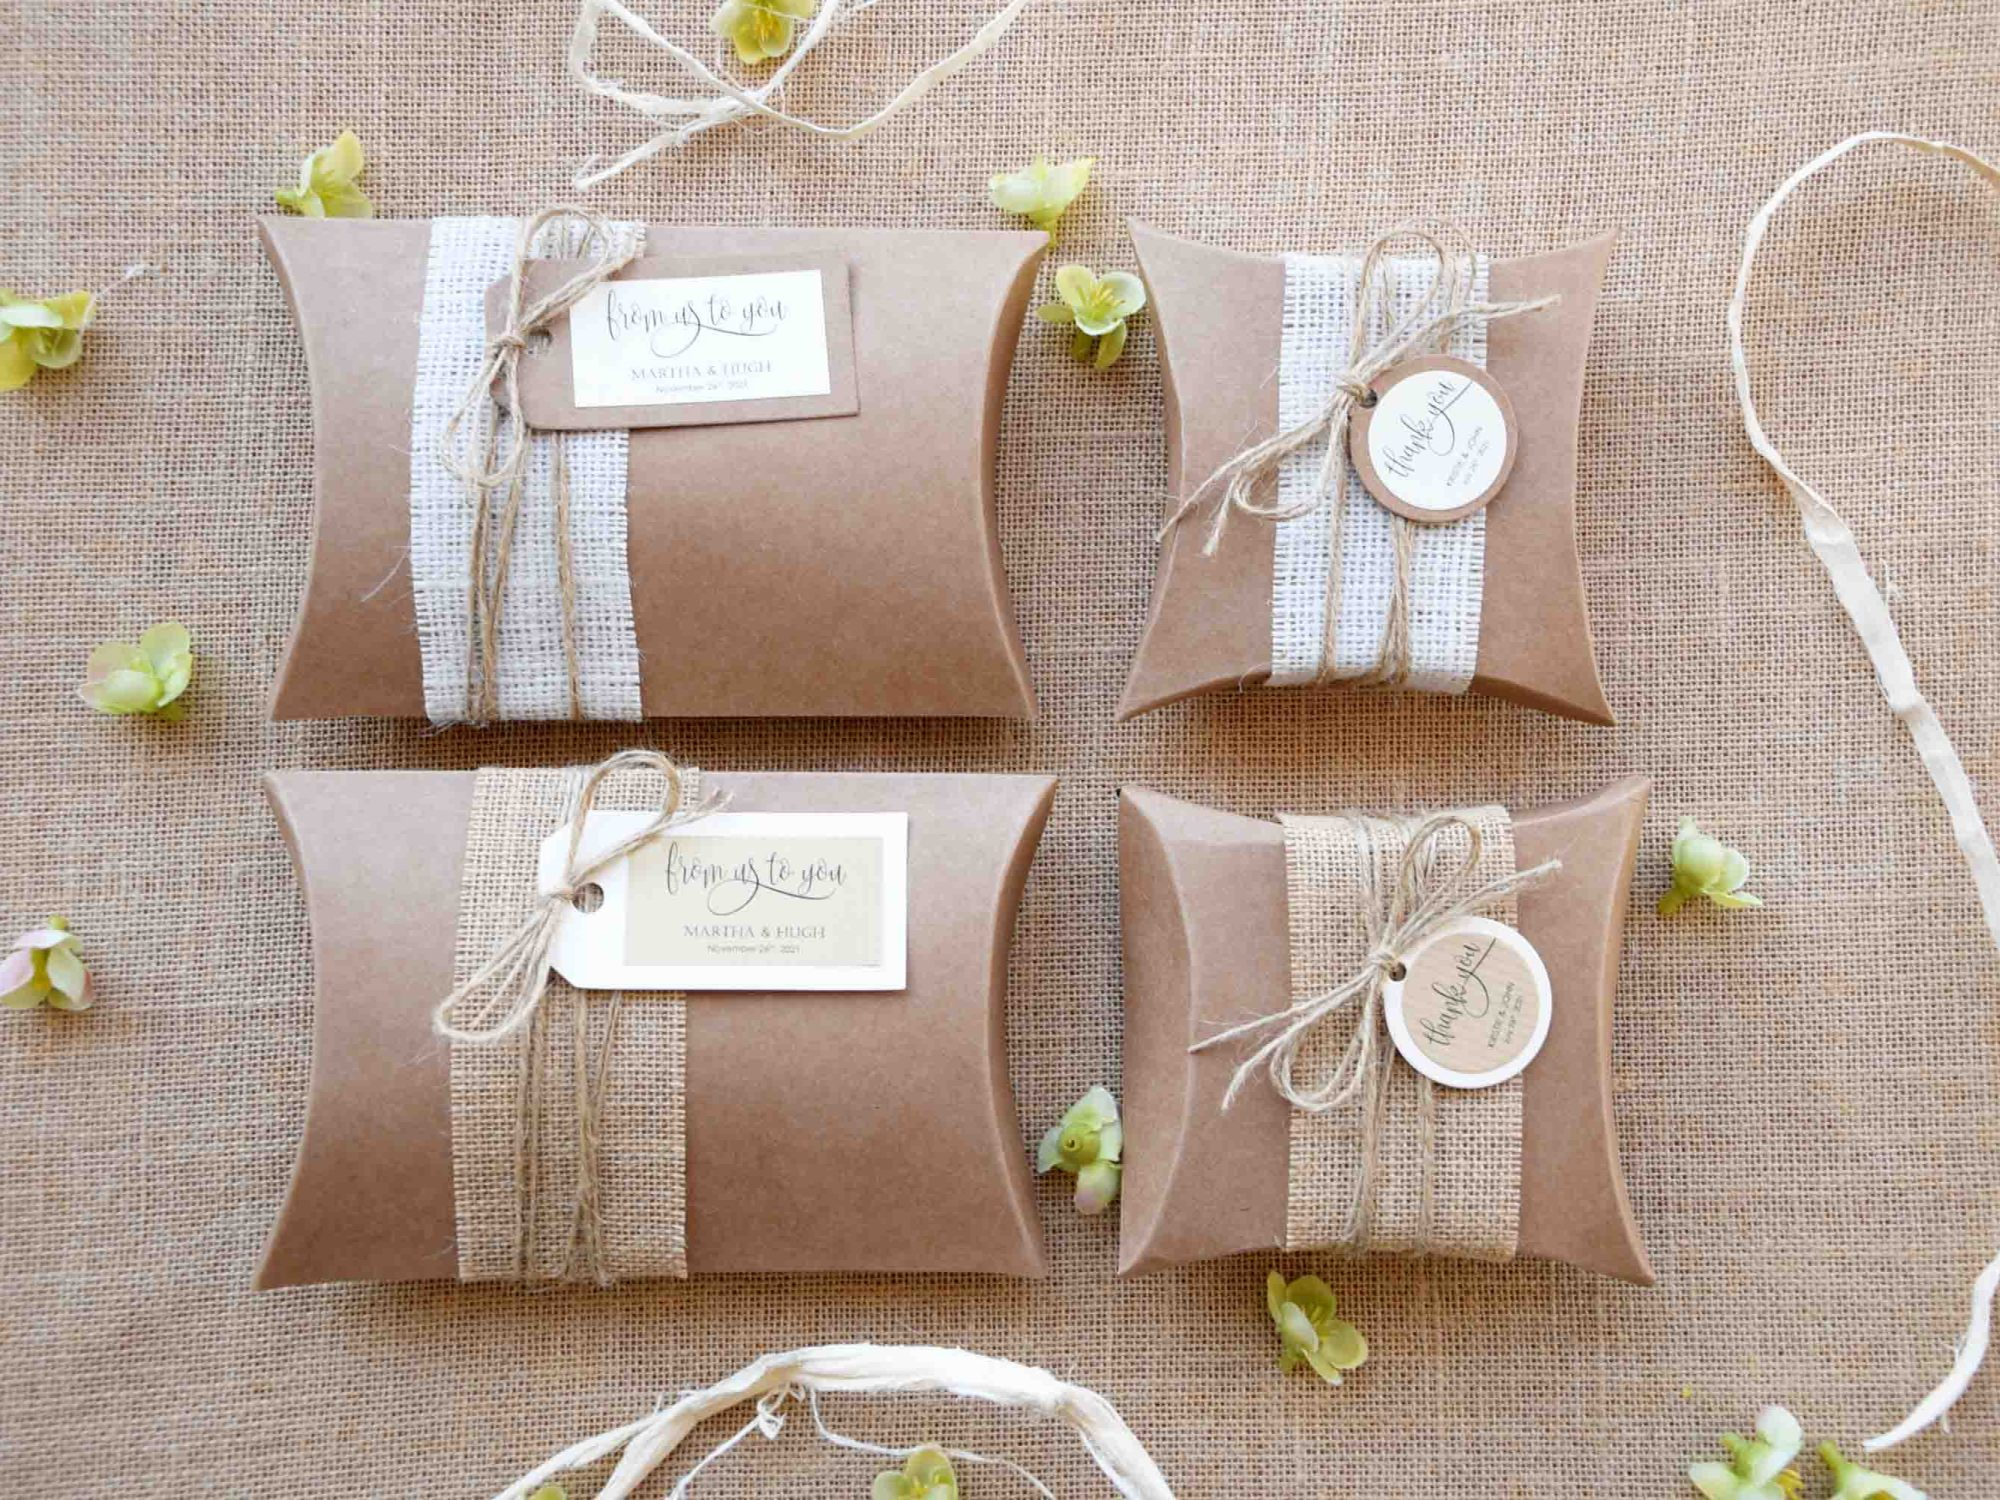 Rectangular or Square Burlap Pillow Boxes #favorboxes #kraftpillowboxes #rusticpillowboxes #largefavorboxes #burlappillowboxes #rusticweddingfavorboxes